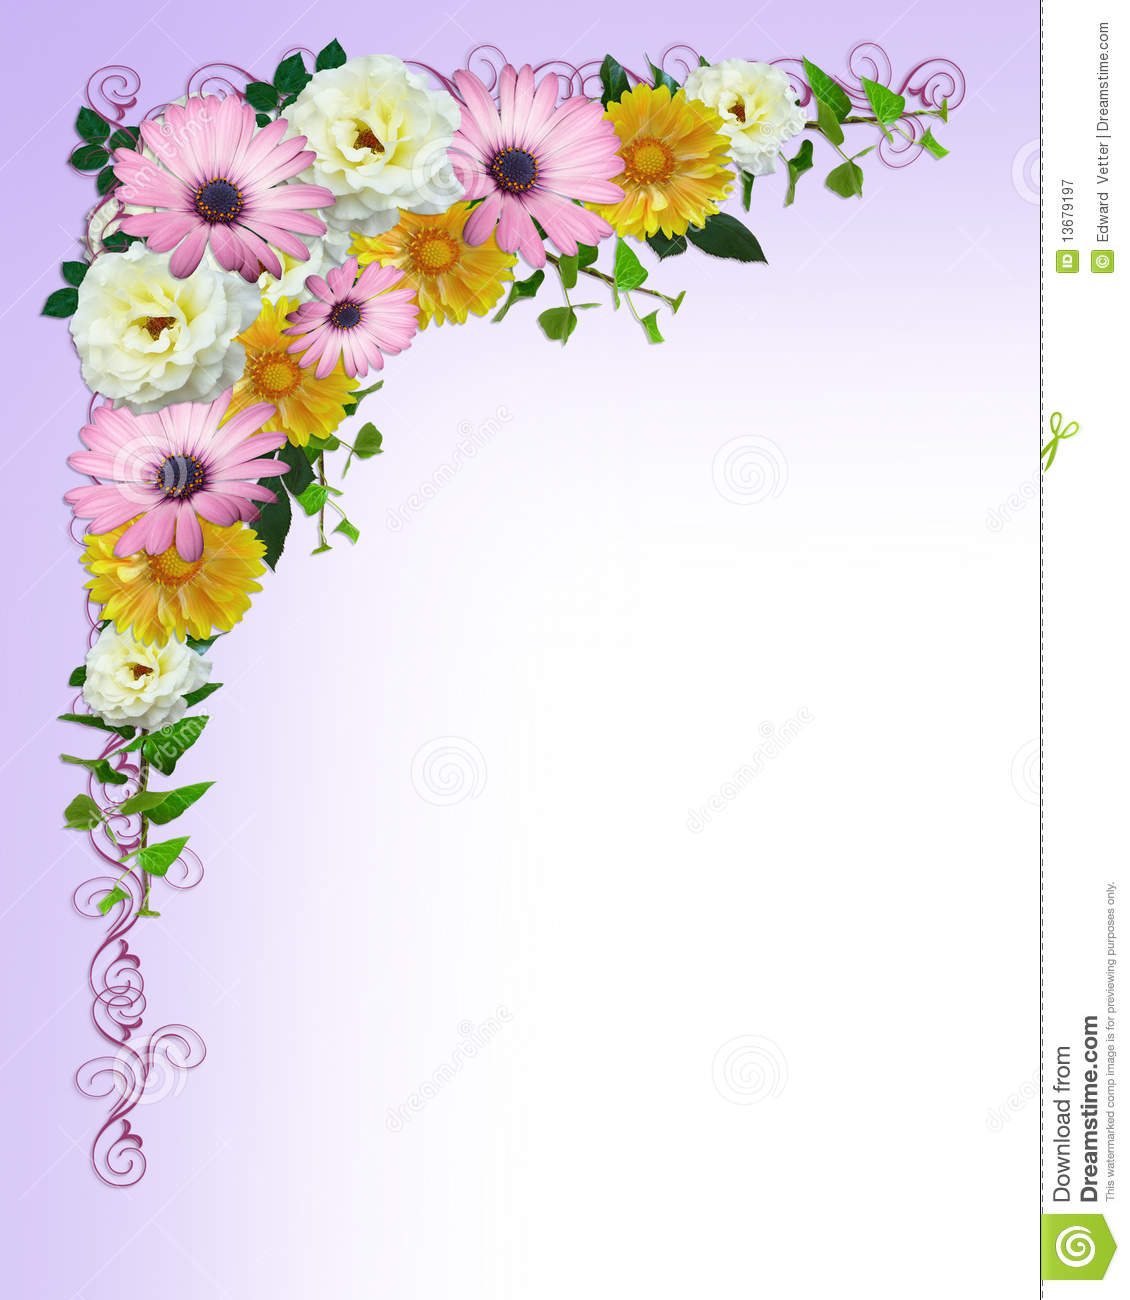 spring flowers border template stock illustration illustration of